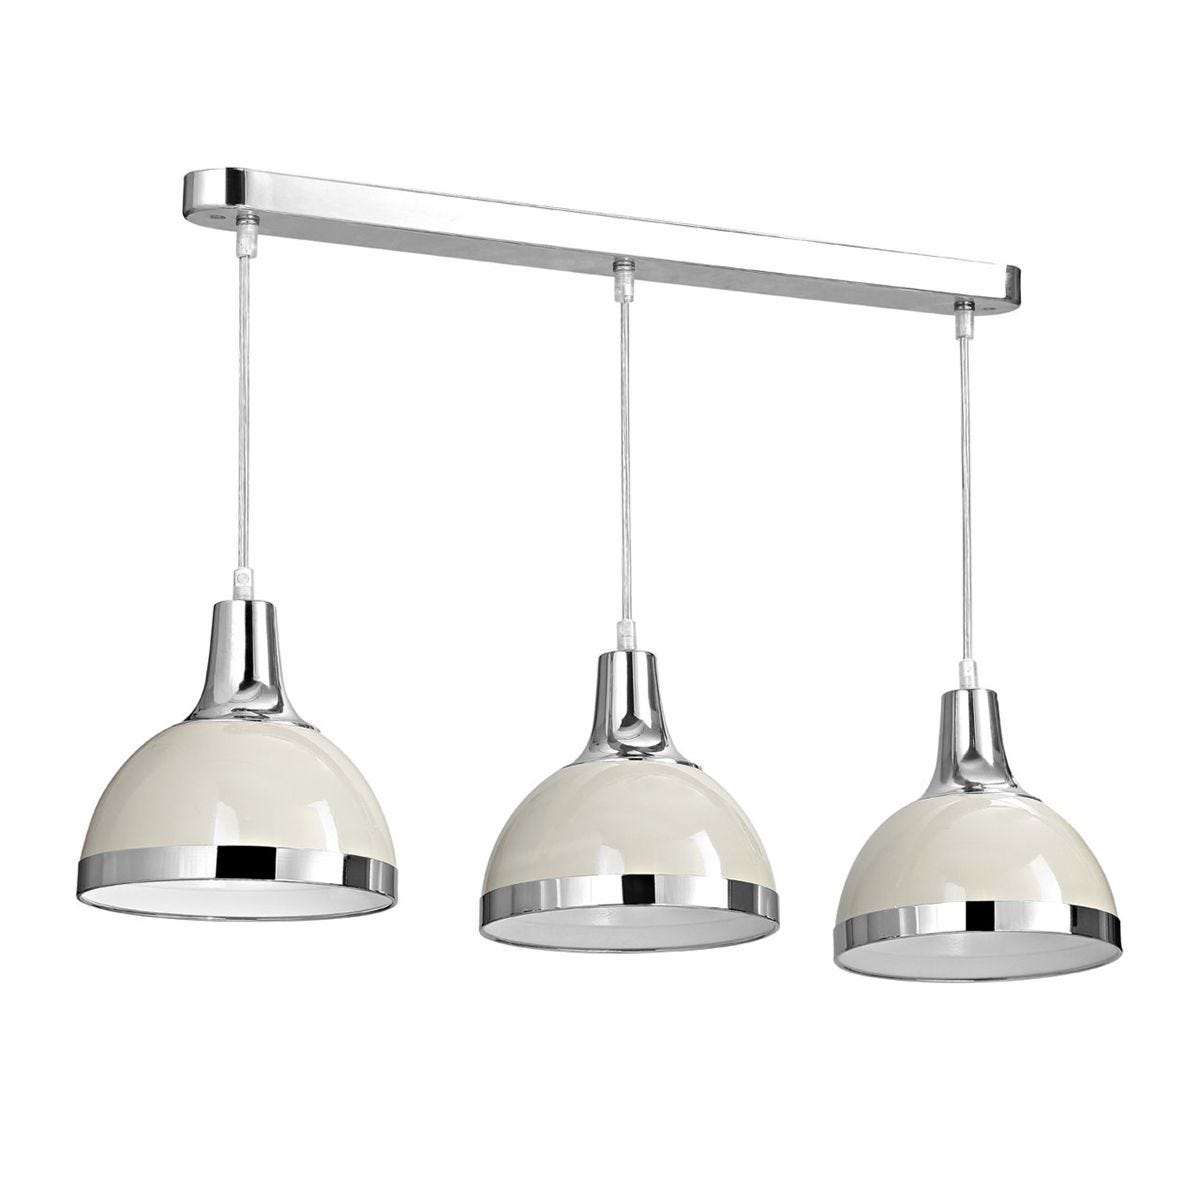 Premier Housewares Vermont Pendant Light 3 Shades - Clay/Chrome